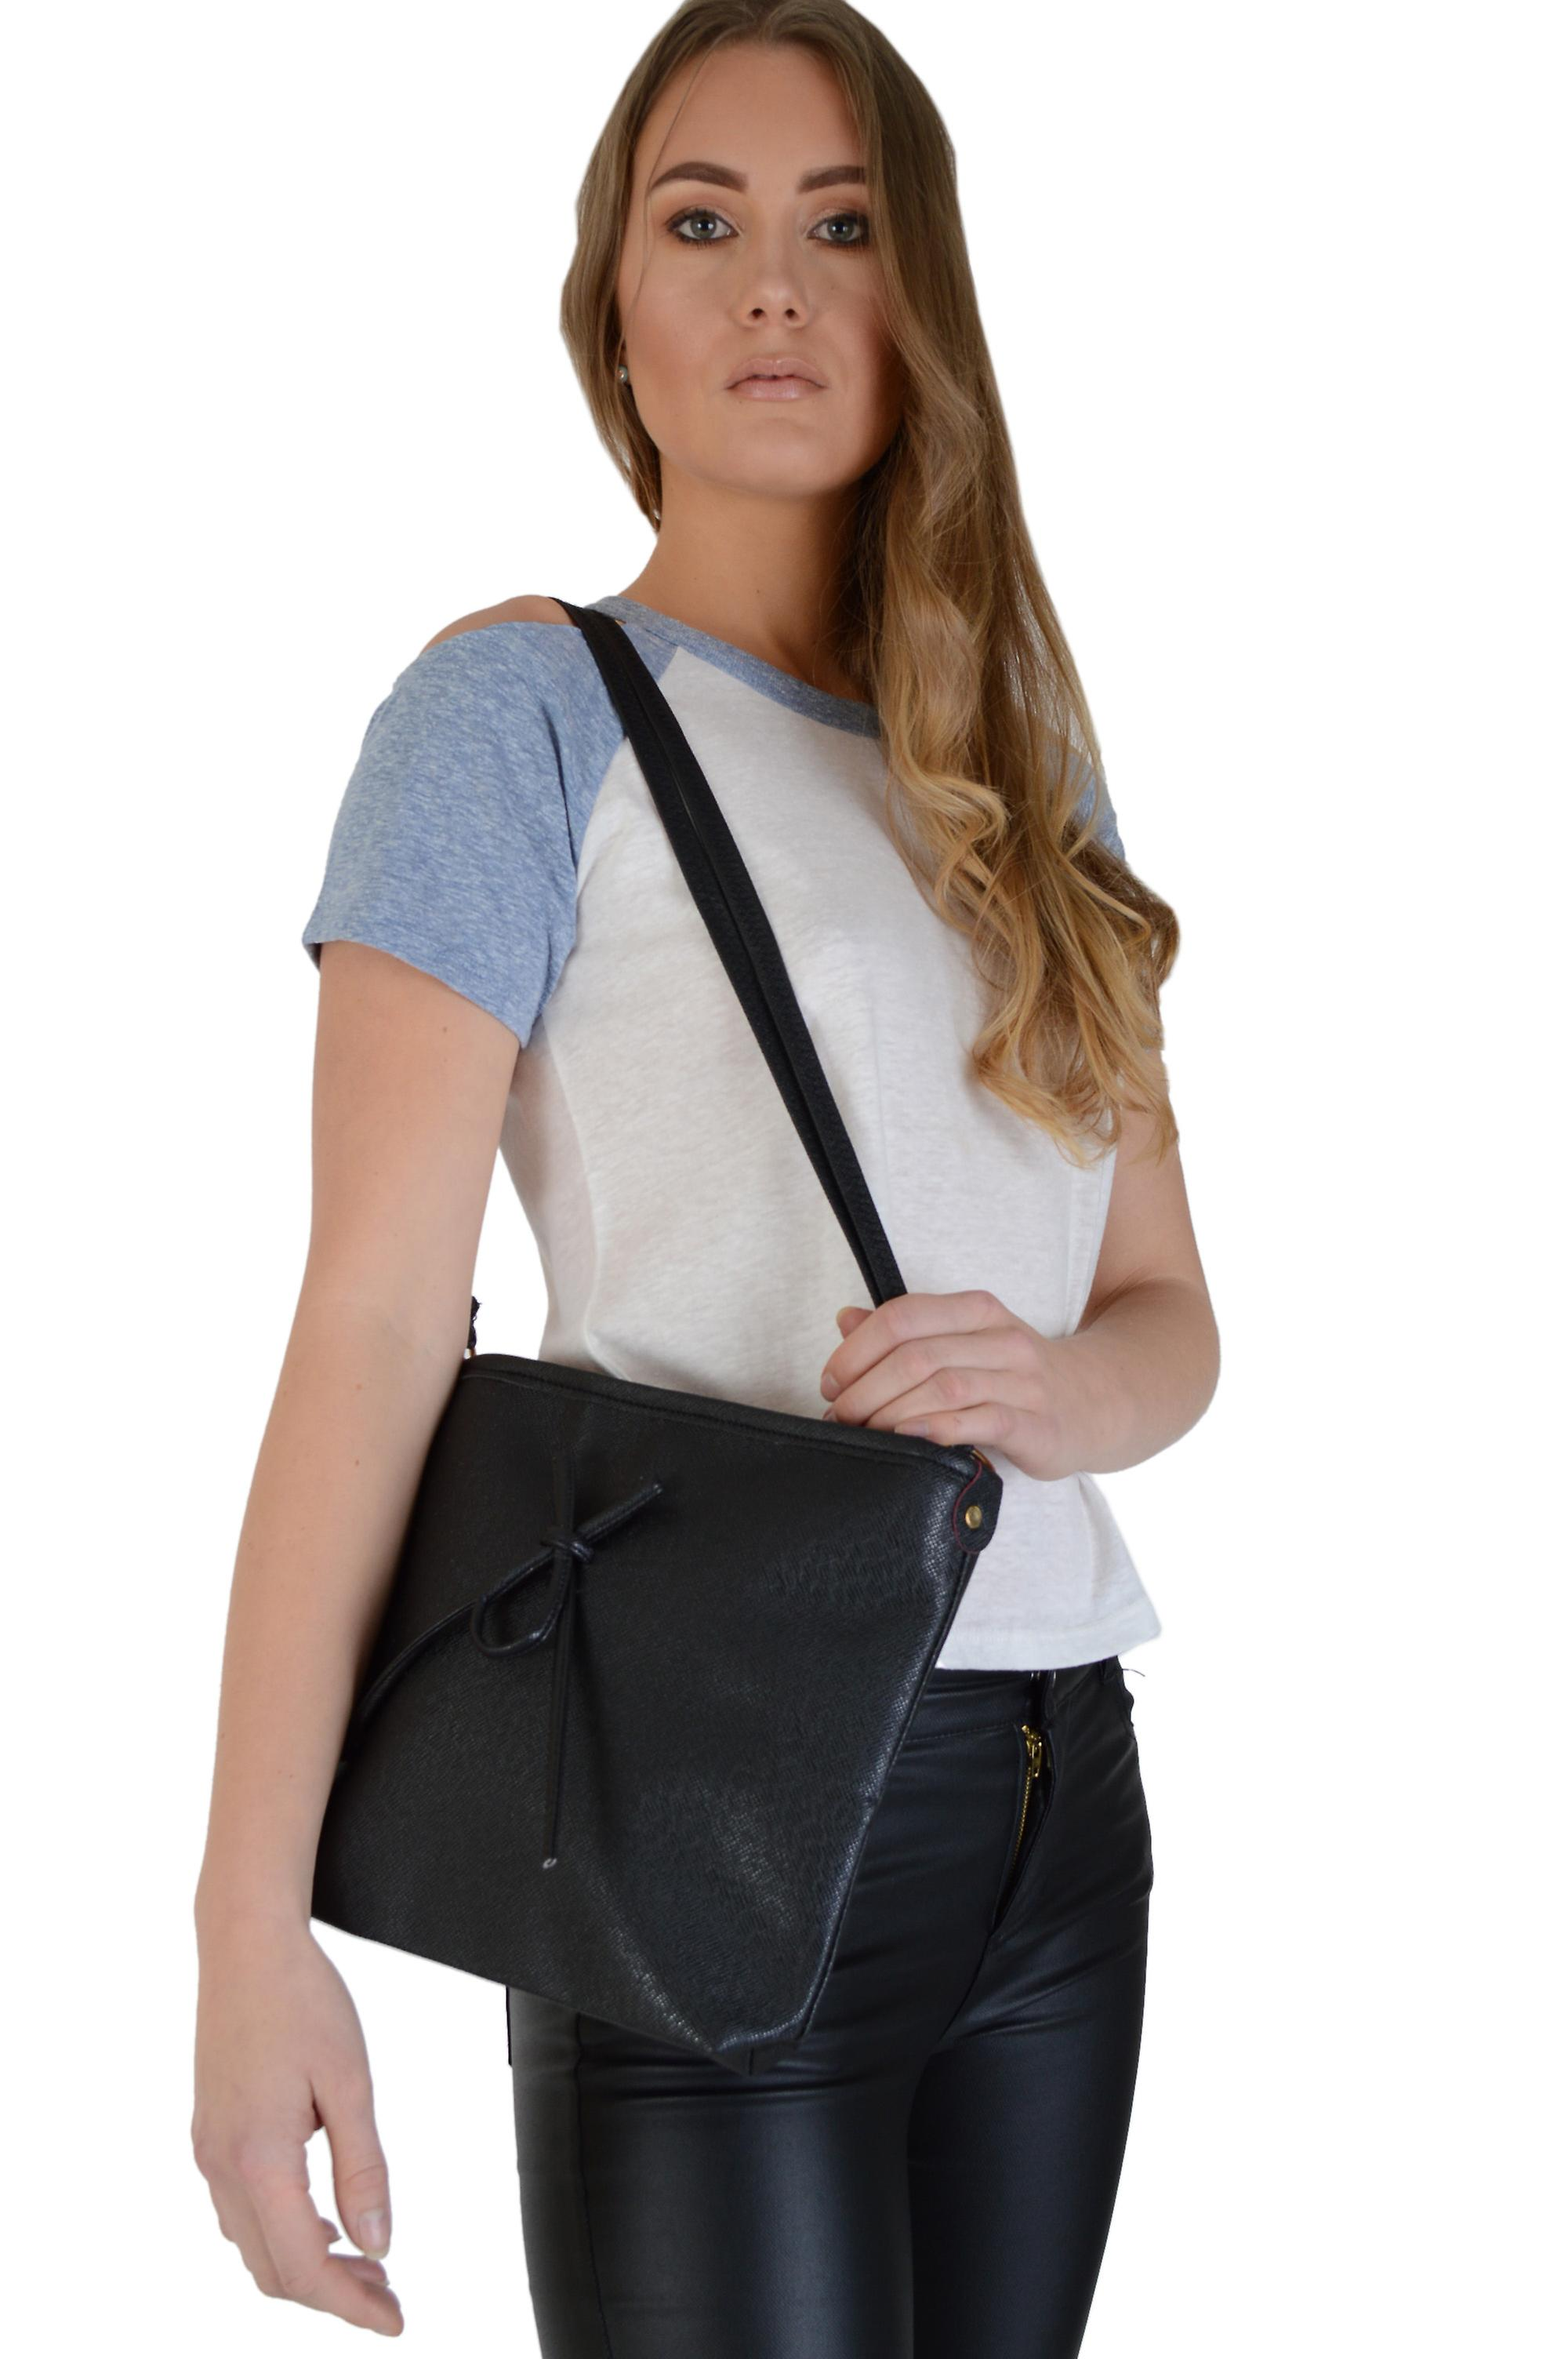 Lovemystyle Black Slim Messenger Bag With Bow Front